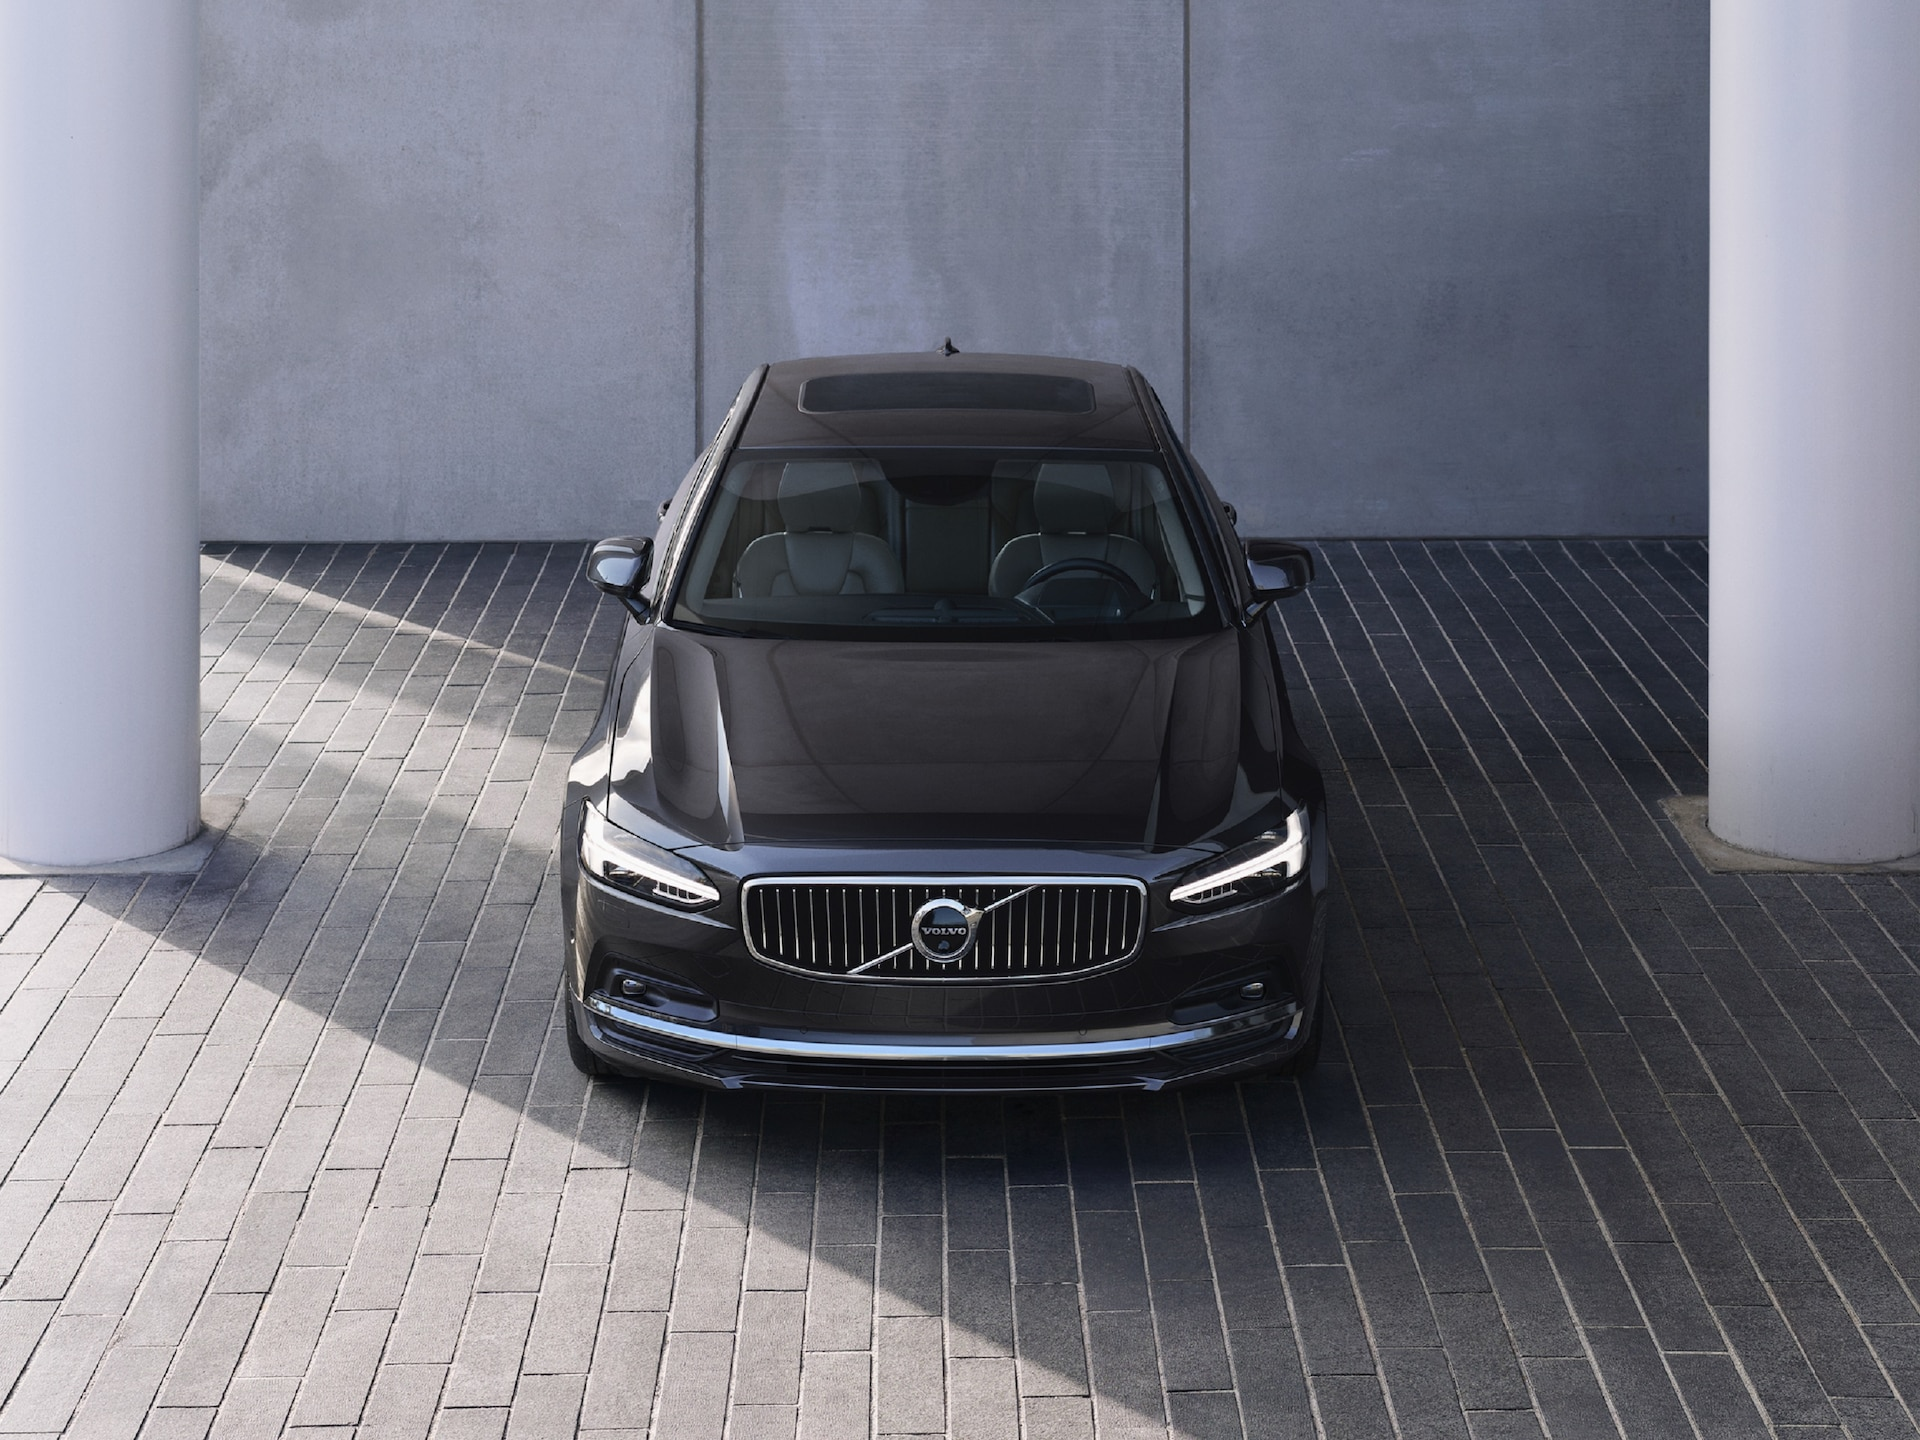 The S90